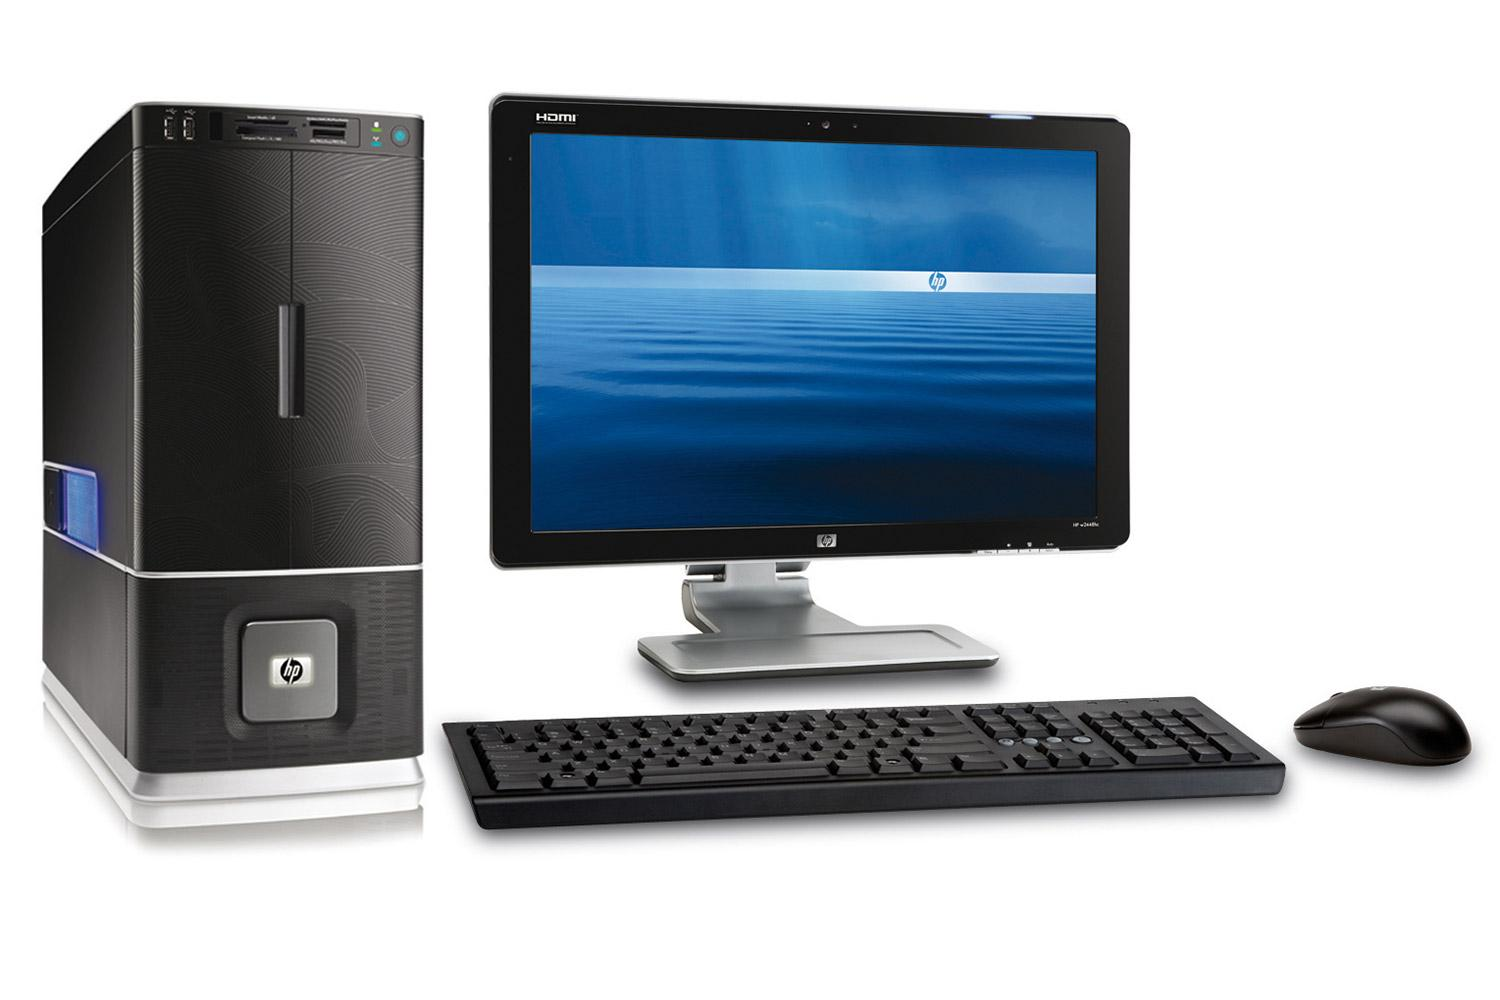 PC sales fall for sixth quarter